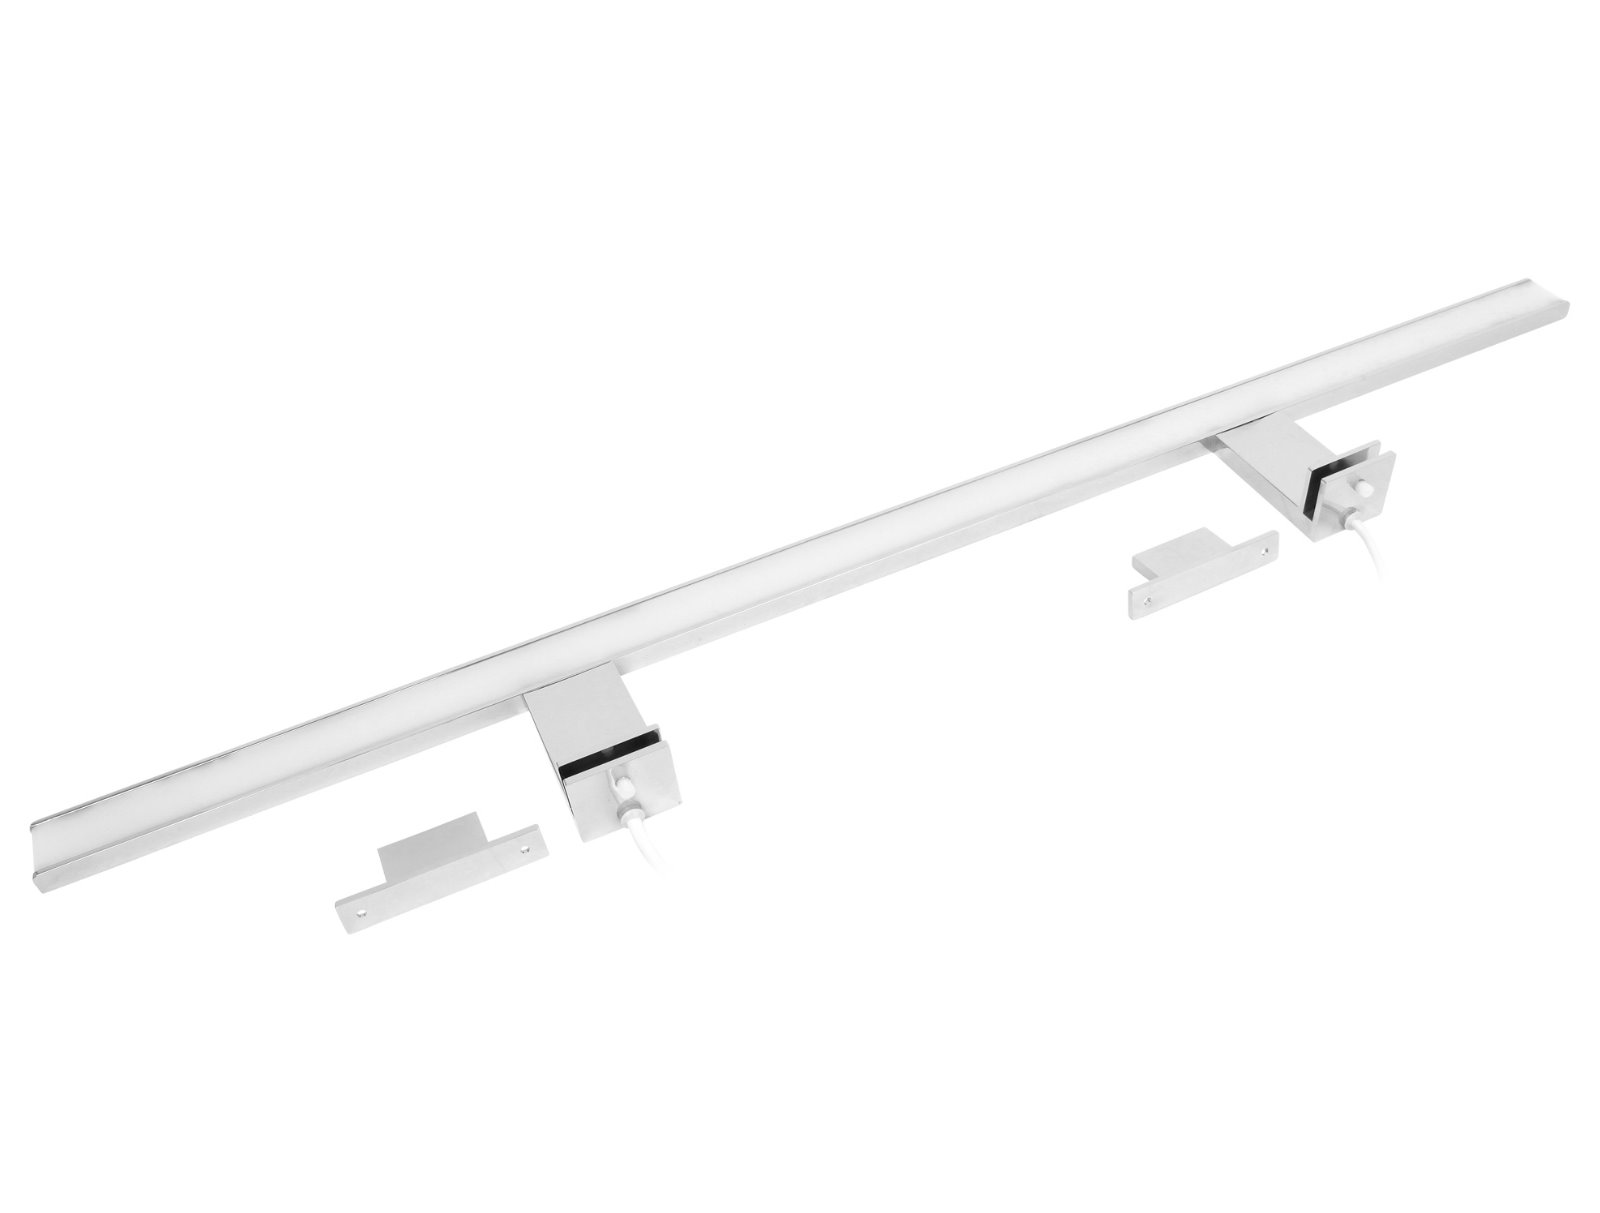 LED 2in1 Aluminium Spiegelleuchte IP44 - 13W warmweiß